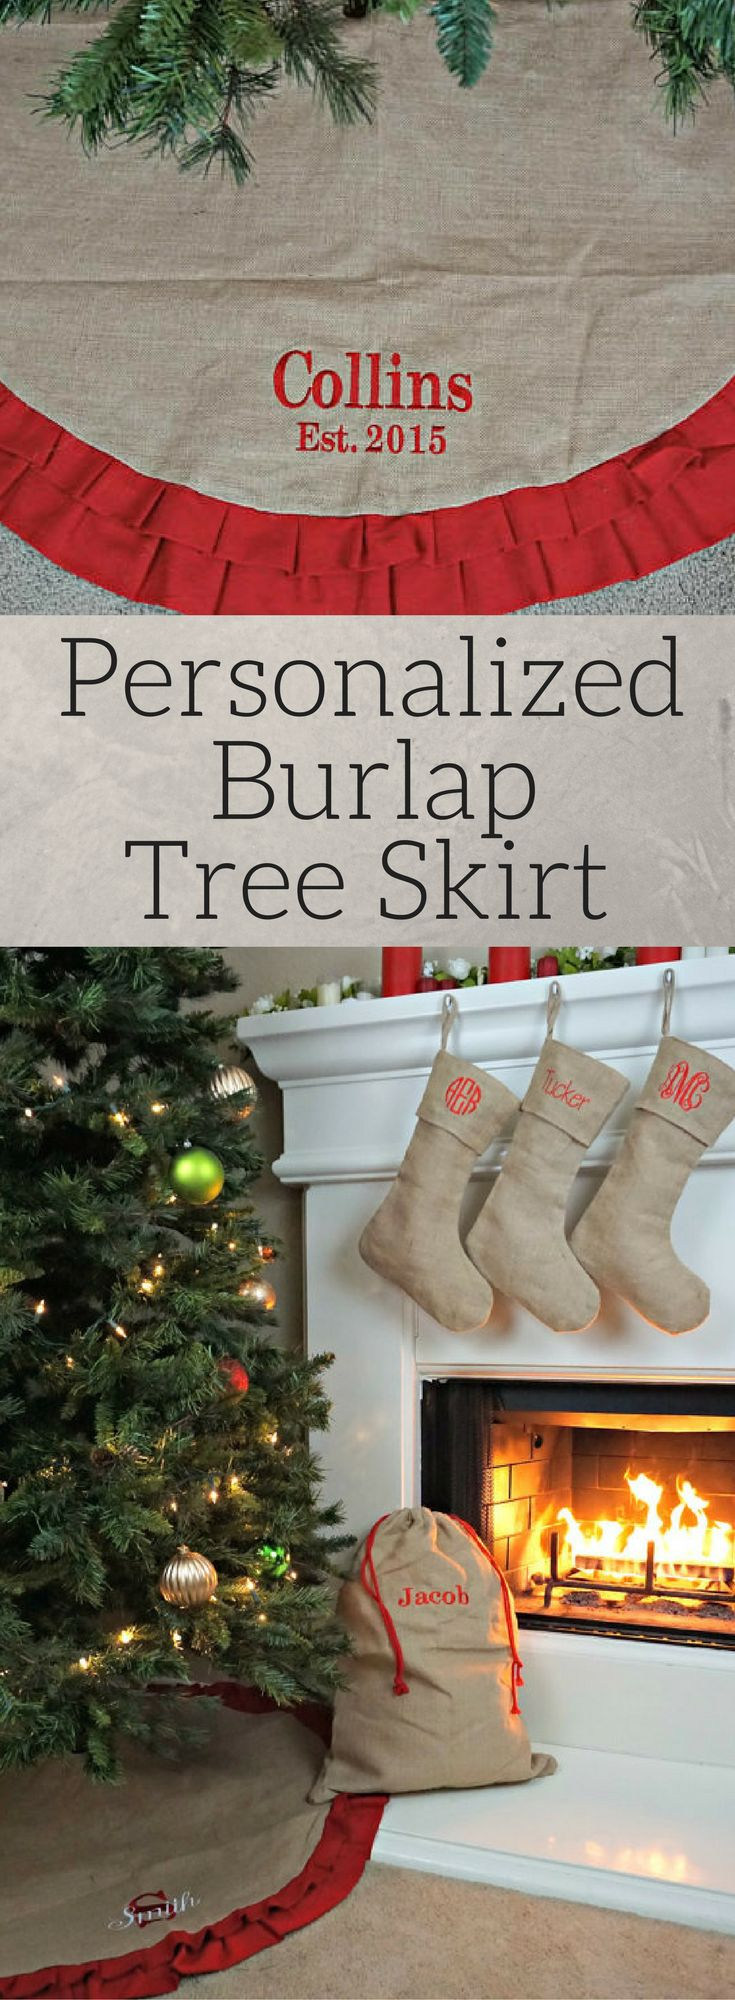 Personalized Burlap Christmas Tree Skirt, Burlap tree skirt, Christmas tree skirt, Ruffle tree skirt, Burlap skirt, personalized Christmas decor, Rustic Christmas tree skirt, Rustic decor, Monogram tree skirt #ad